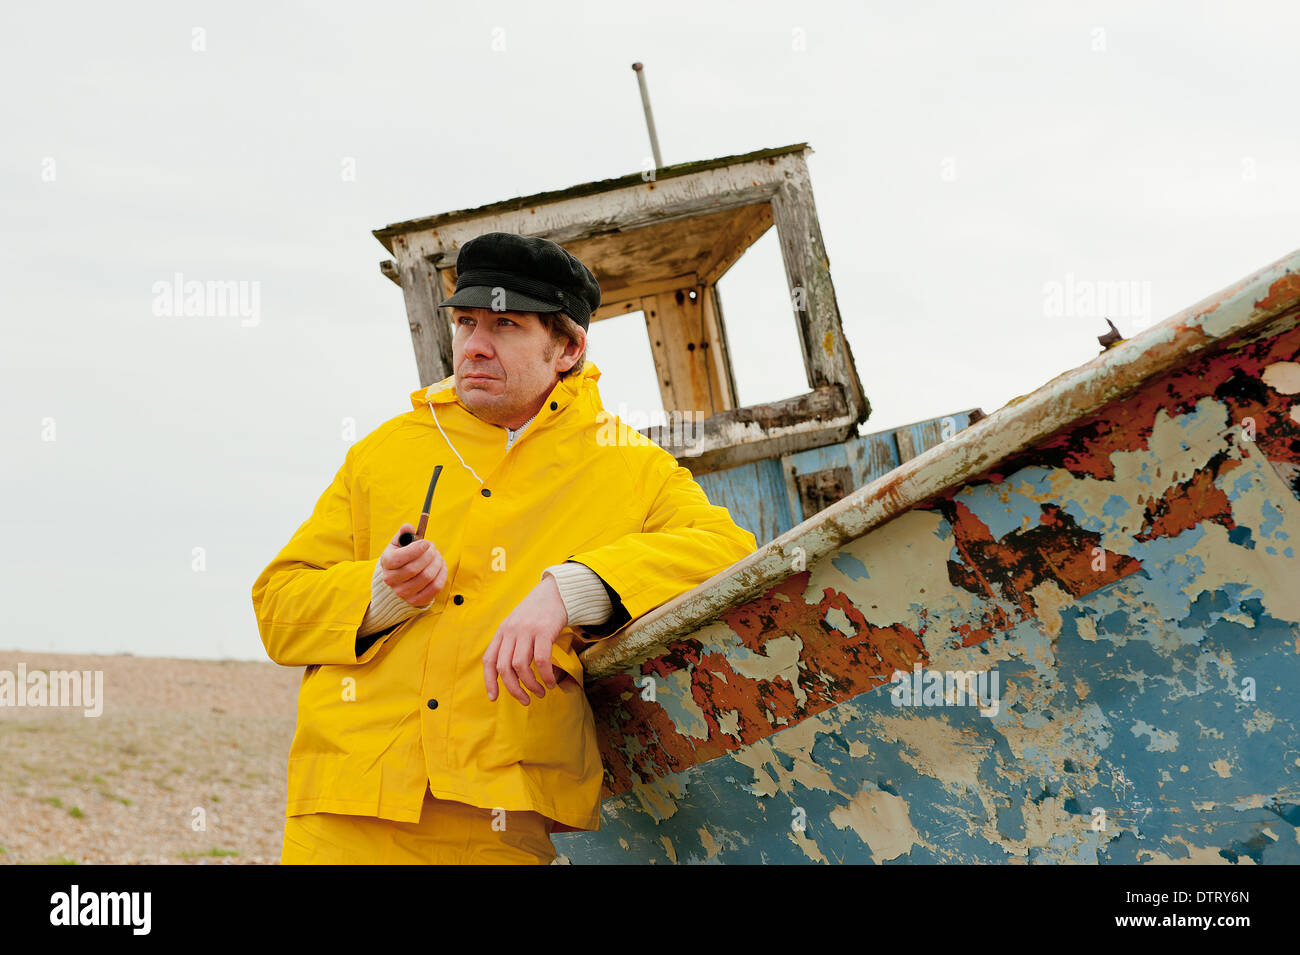 Fisherman in yellow waterproofs leaning against an old fishing boat and smoking a pipe. - Stock Image